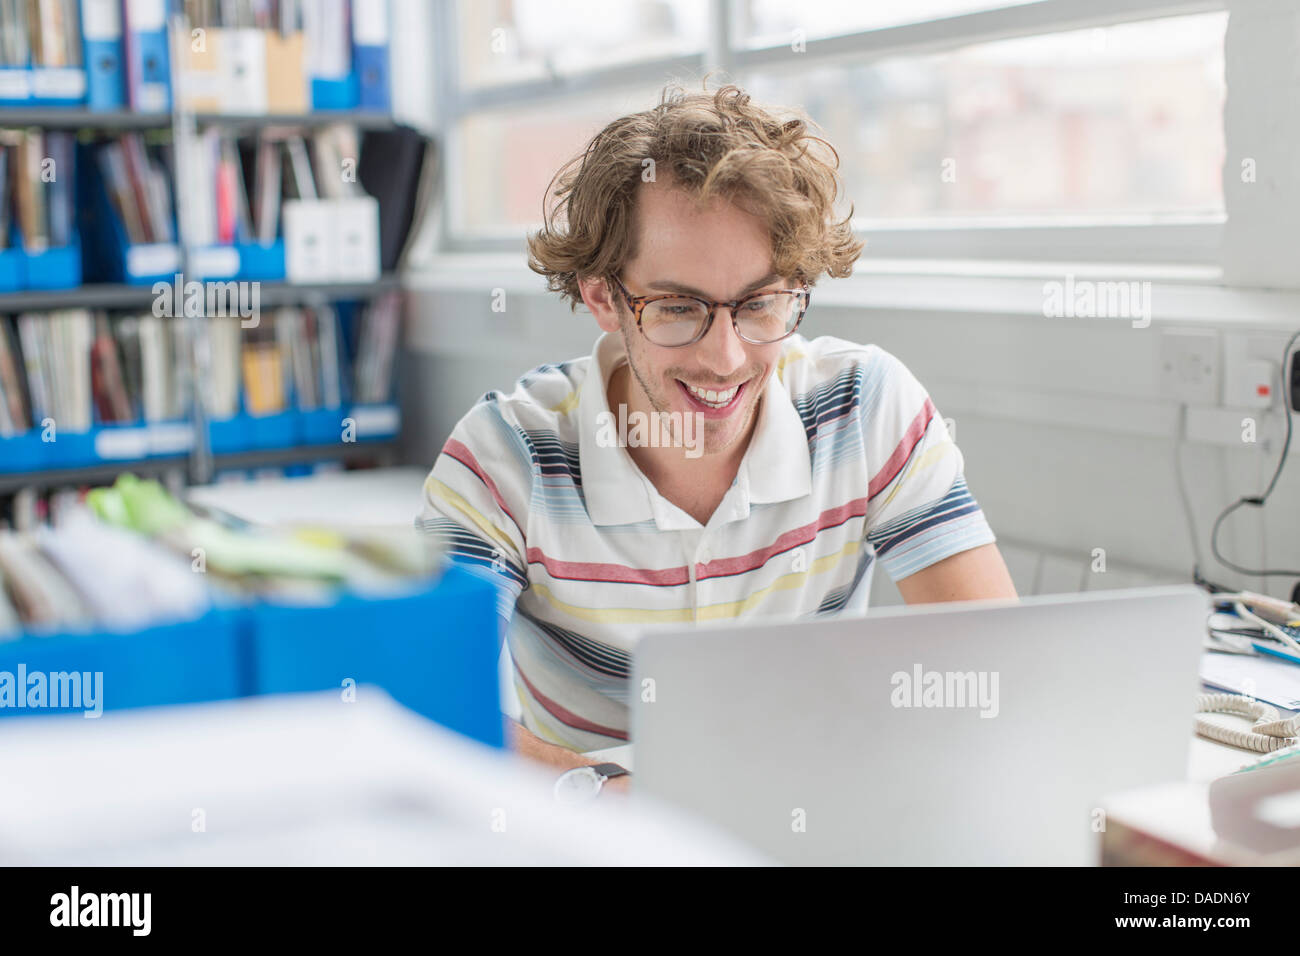 Young man using laptop and smiling in creative office - Stock Image